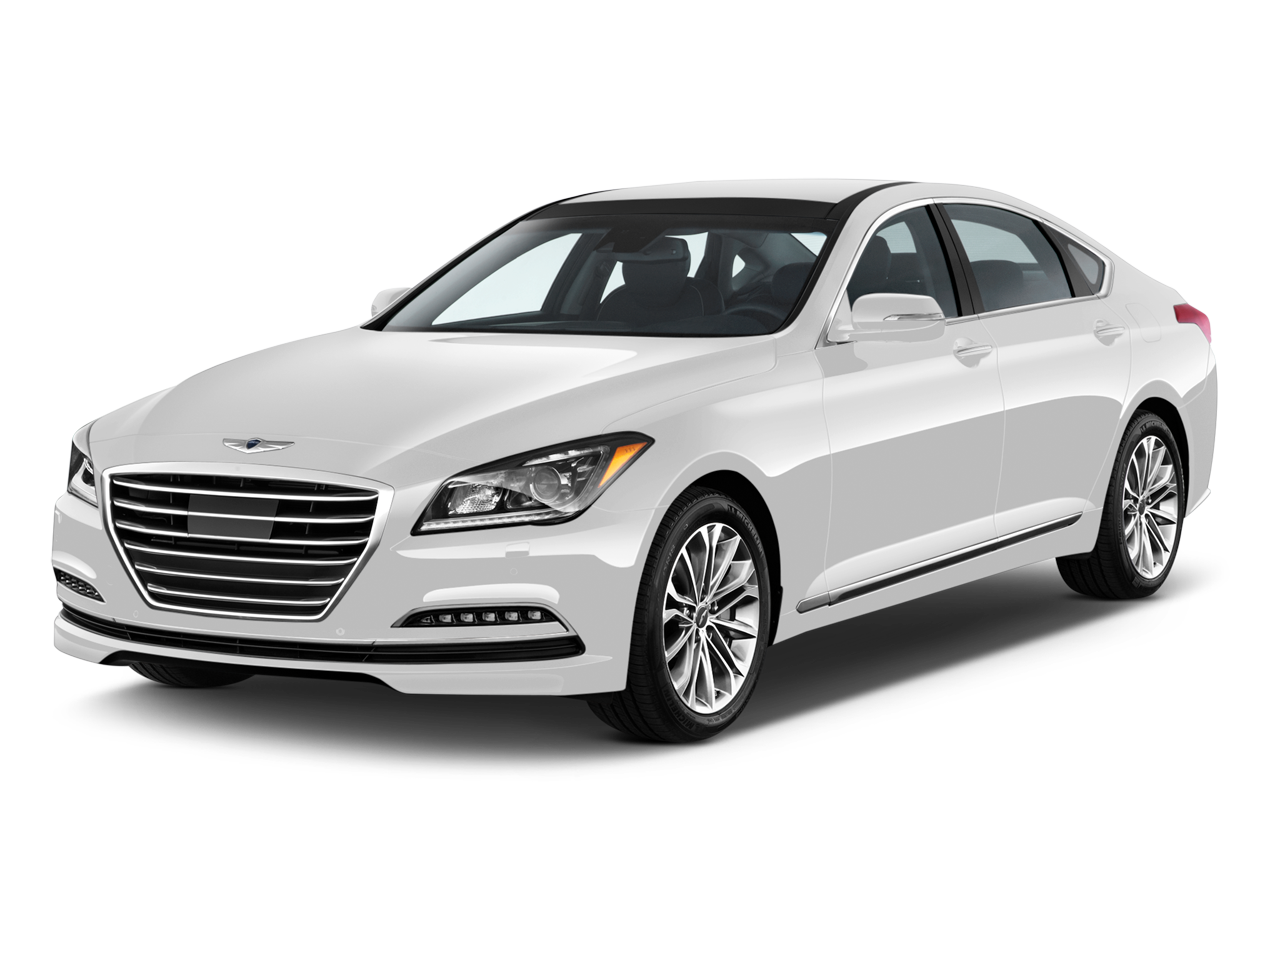 new 2017 genesis g80 3 8 near capitol heights md pohanka hyundai of capitol heights. Black Bedroom Furniture Sets. Home Design Ideas